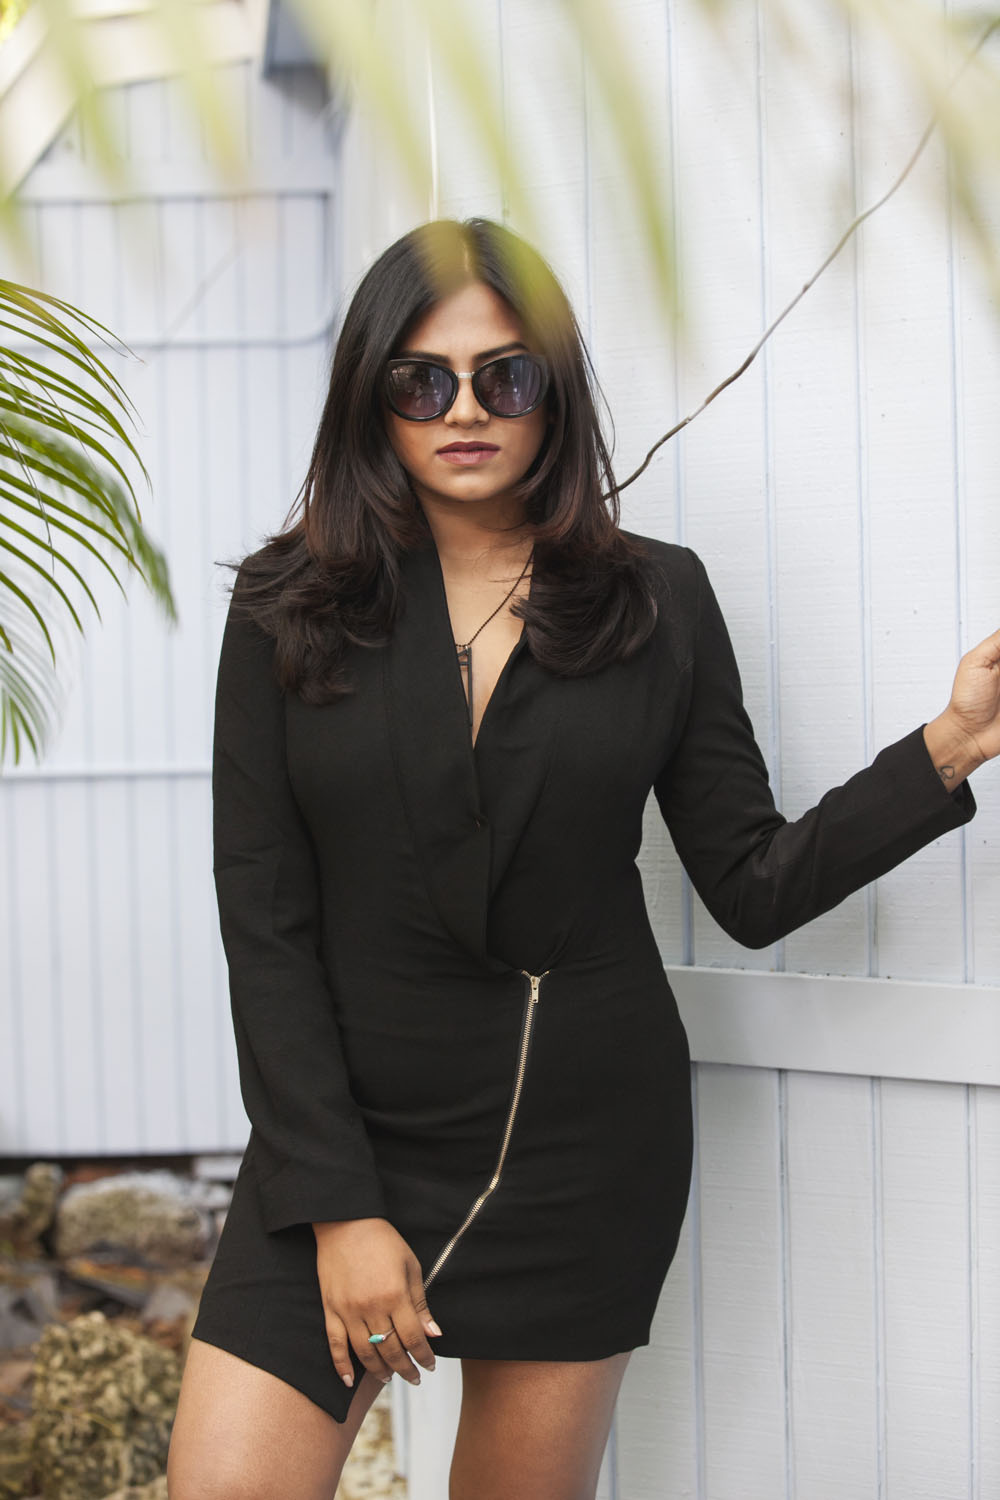 Black Tuxedo Dress Fashion Street Style